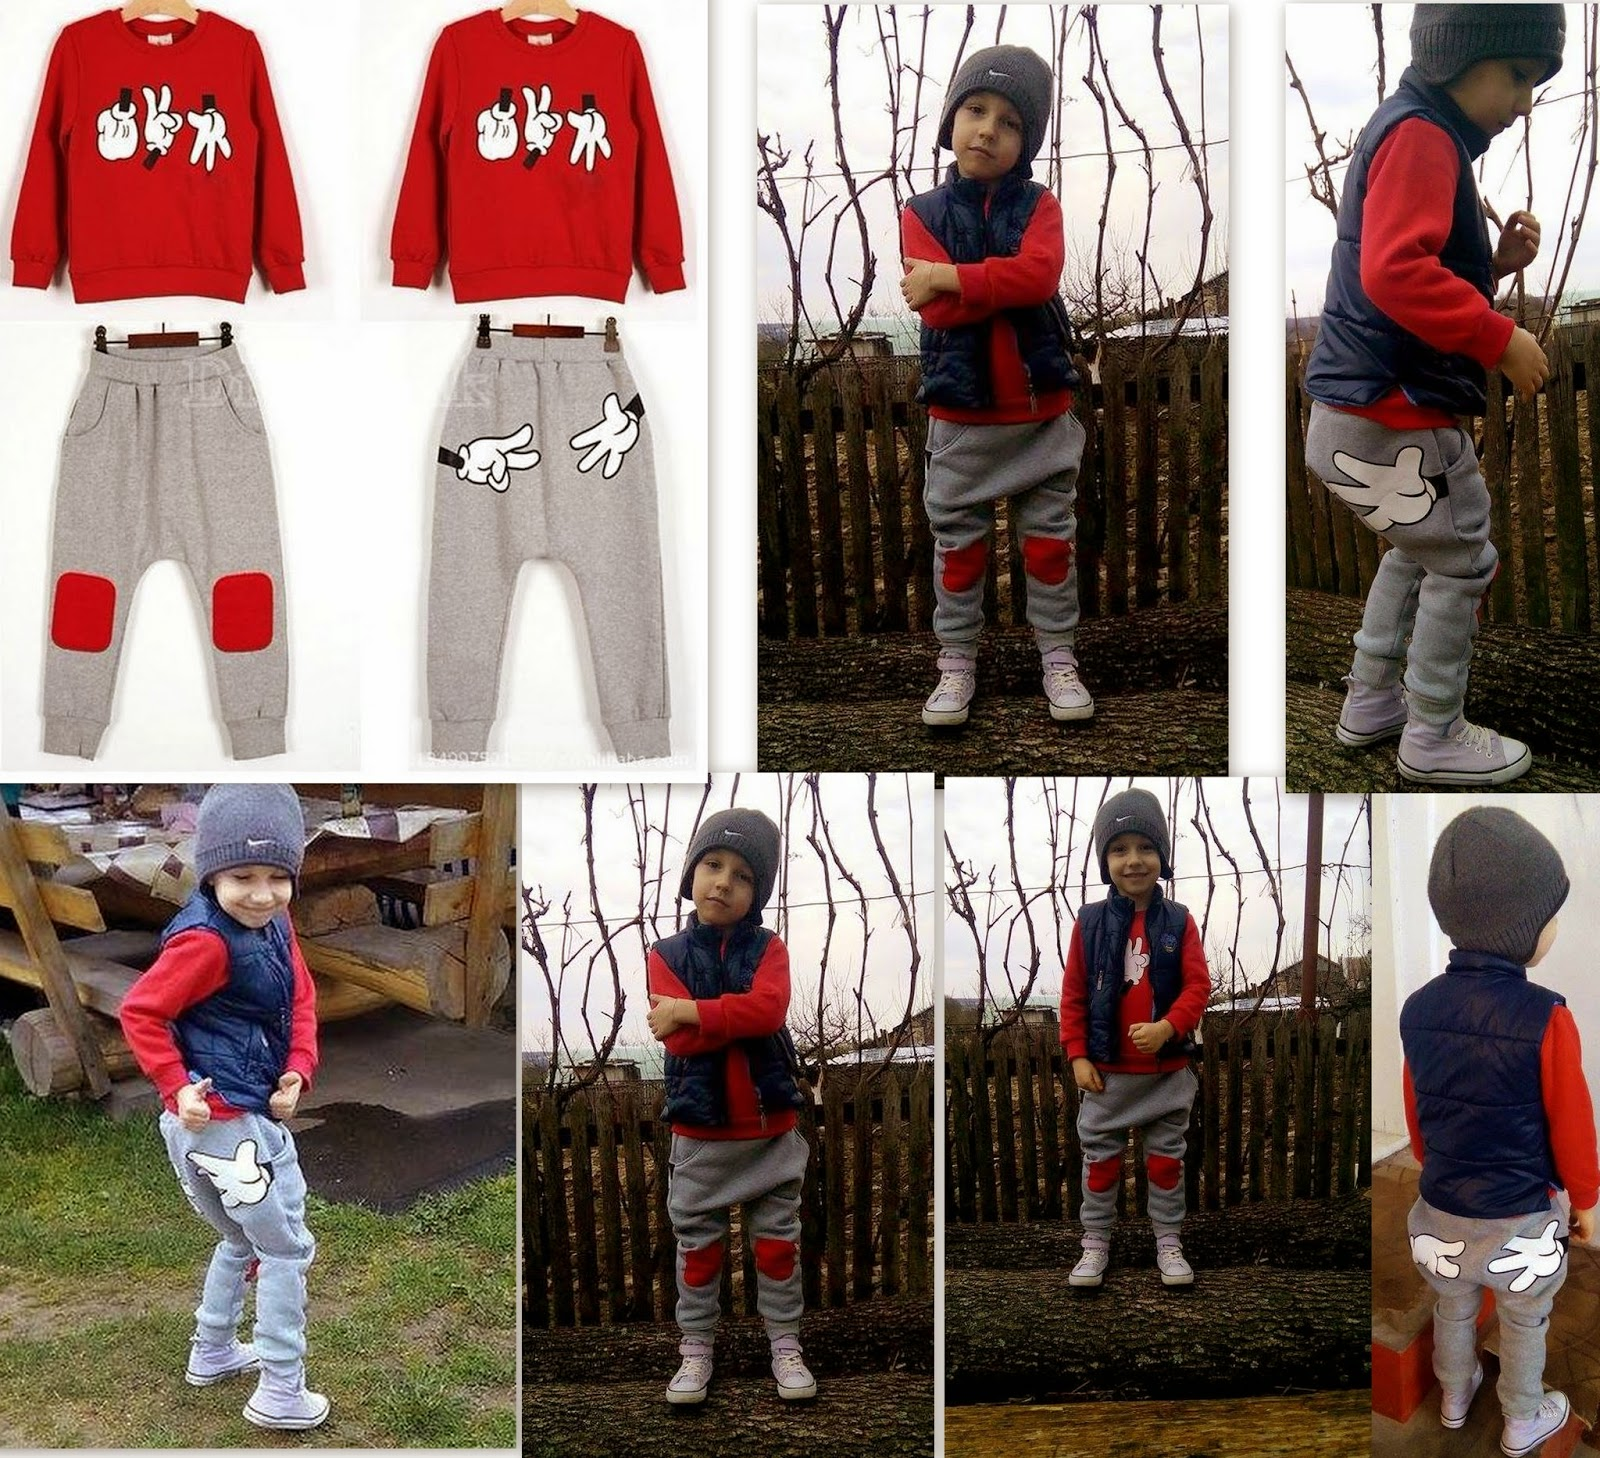 http://www.dresslink.com/2pcs-nwt-vaenait-baby-boys-toddler-kids-boy-finger-top-tshirtspants-outfit-p-13353.html?utm_source=blog&utm_medium=banner&utm_campaign=lendy163